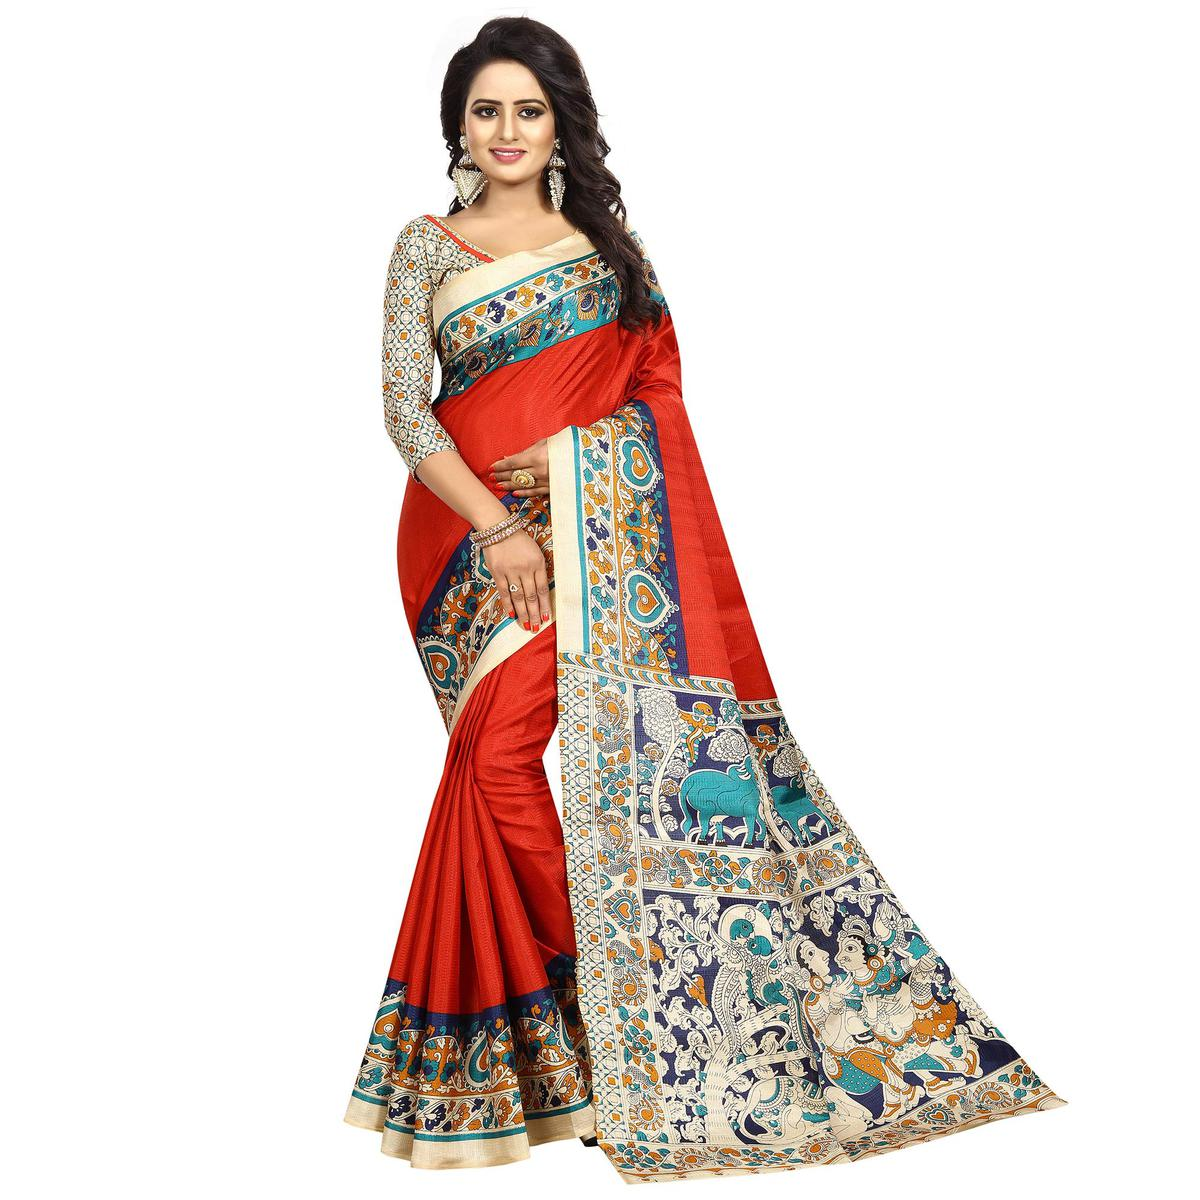 Mesmerising Red Colored Casual Wear Printed Kalamkari Silk Saree